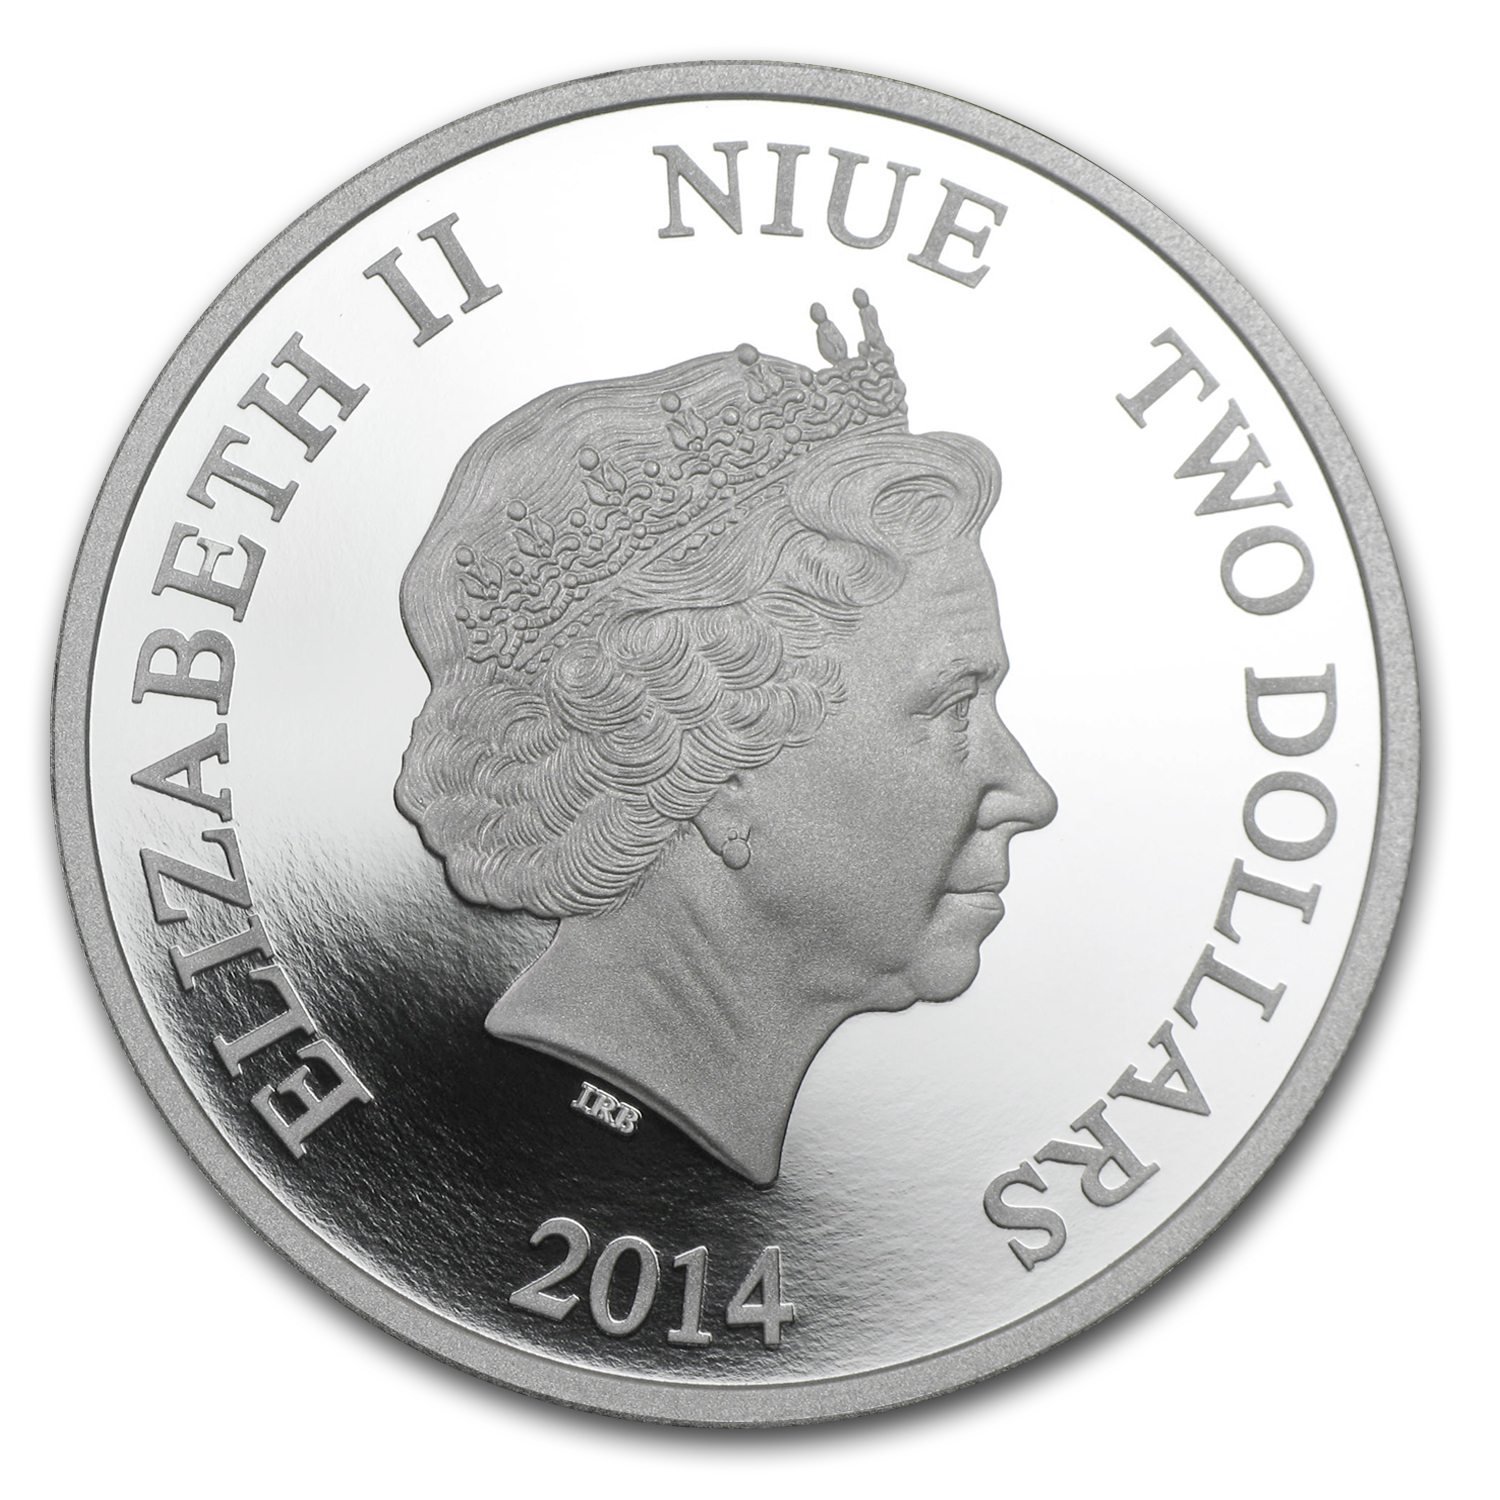 2014 Niue 1 oz Silver $2 Disney Donald Duck